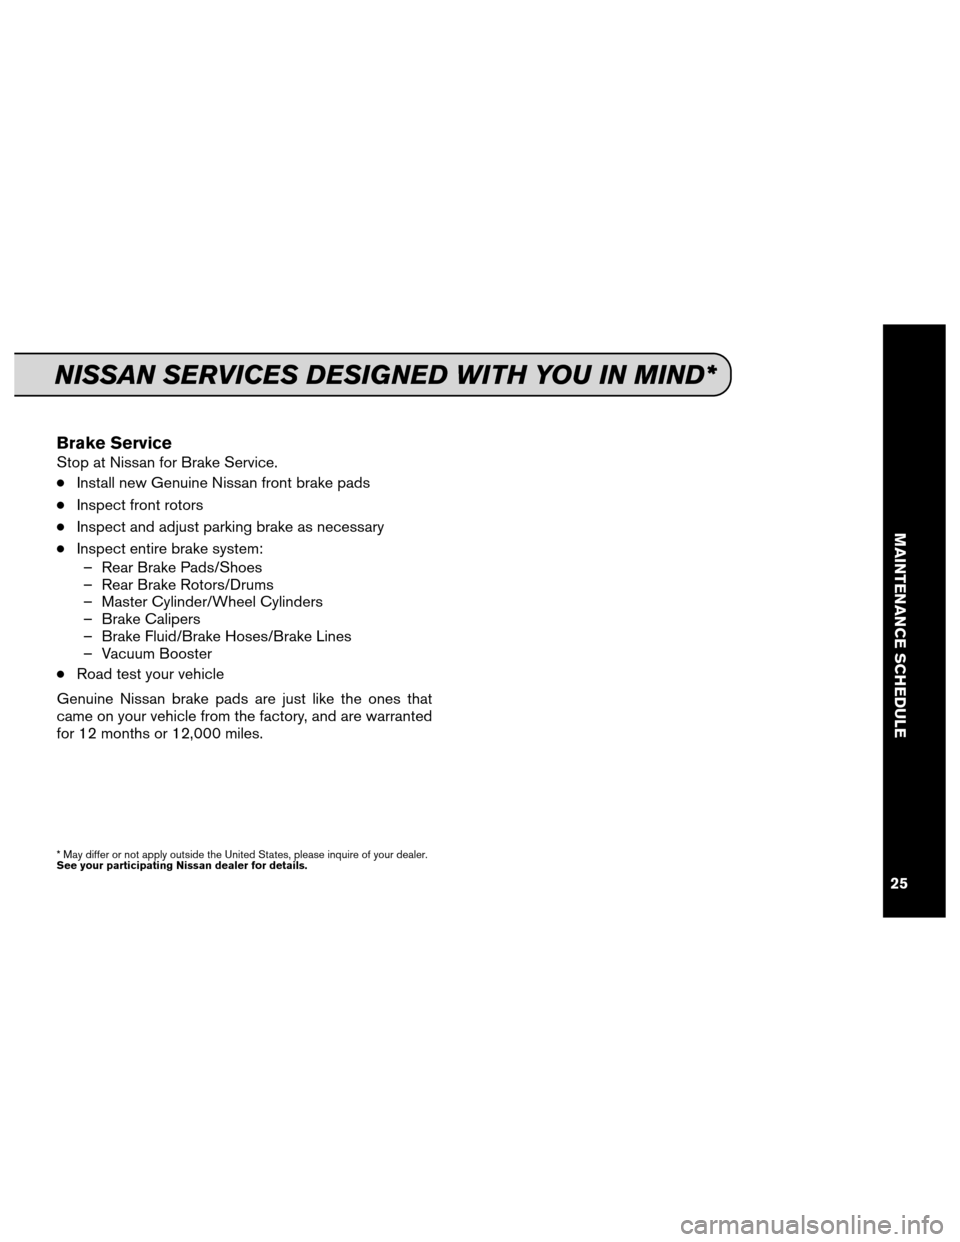 NISSAN ALTIMA COUPE 2013 D32 / 4.G Service And Maintenance Guide Brake Service Stop at Nissan for Brake Service. ●Install new Genuine Nissan front brake pads ●Inspect front rotors ●Inspect and adjust parking brake as necessary ●Inspect entire brake system:�